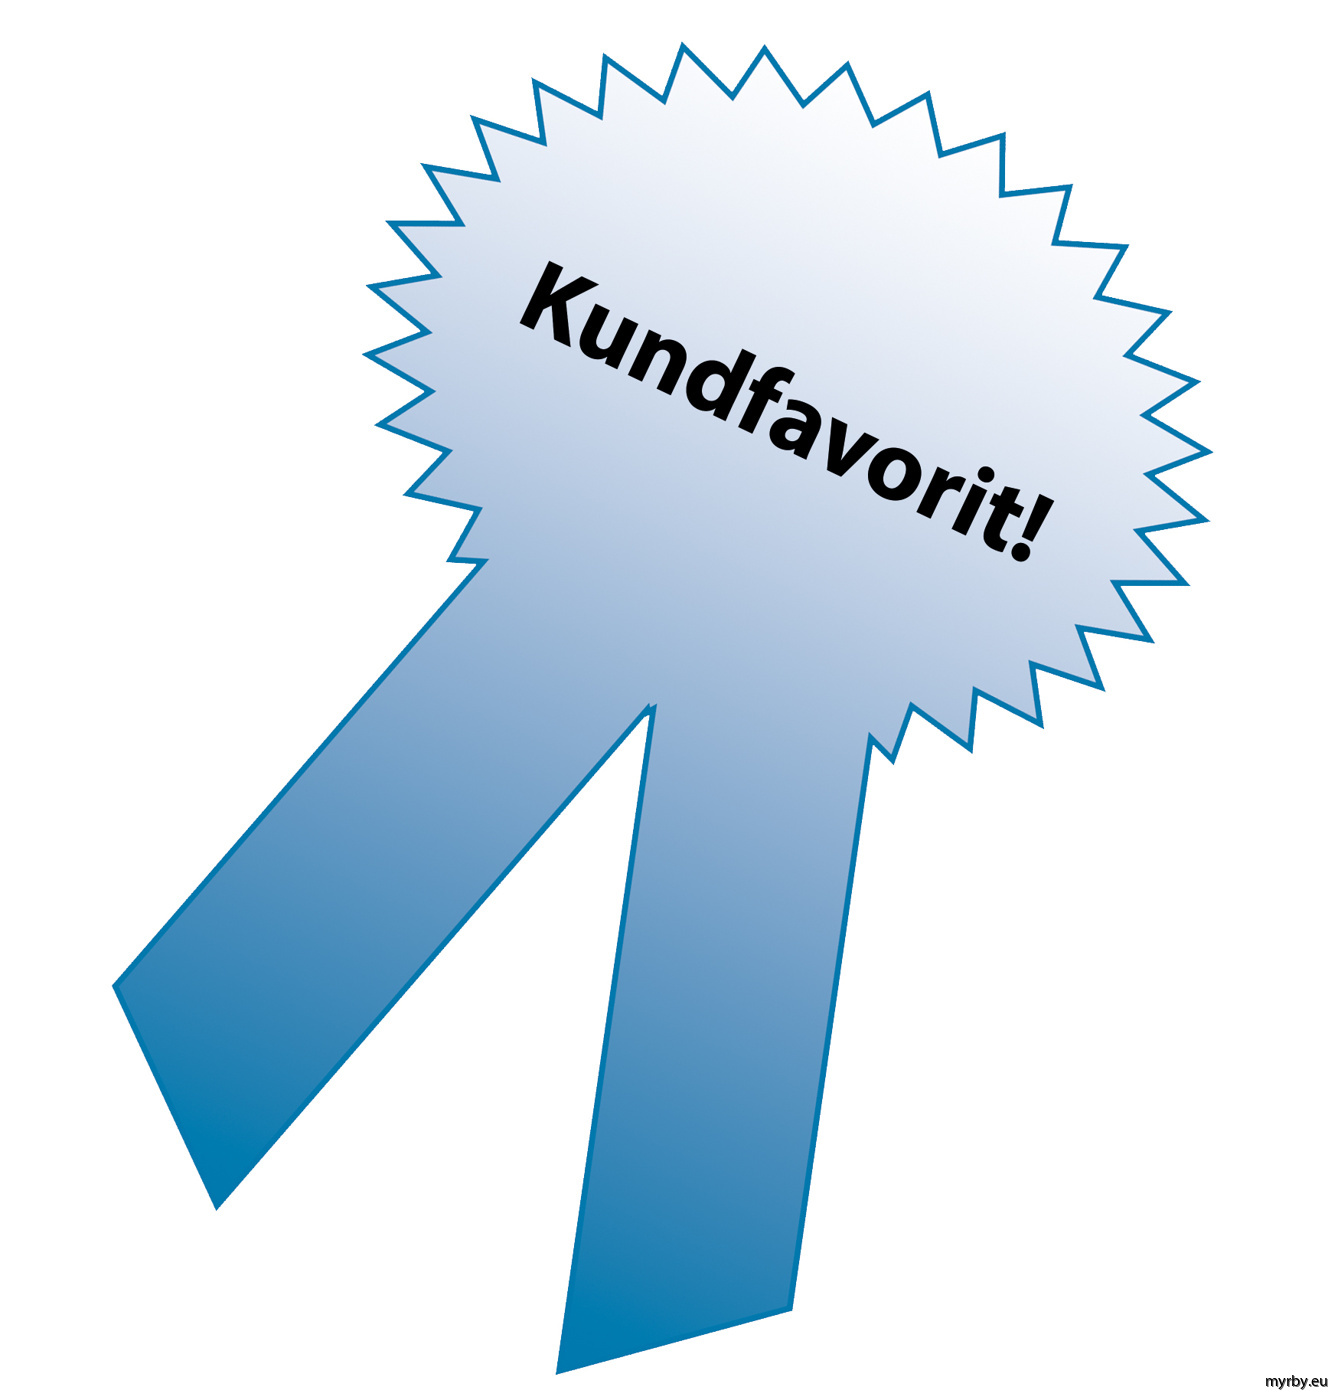 Vinjett kundfavorit PS